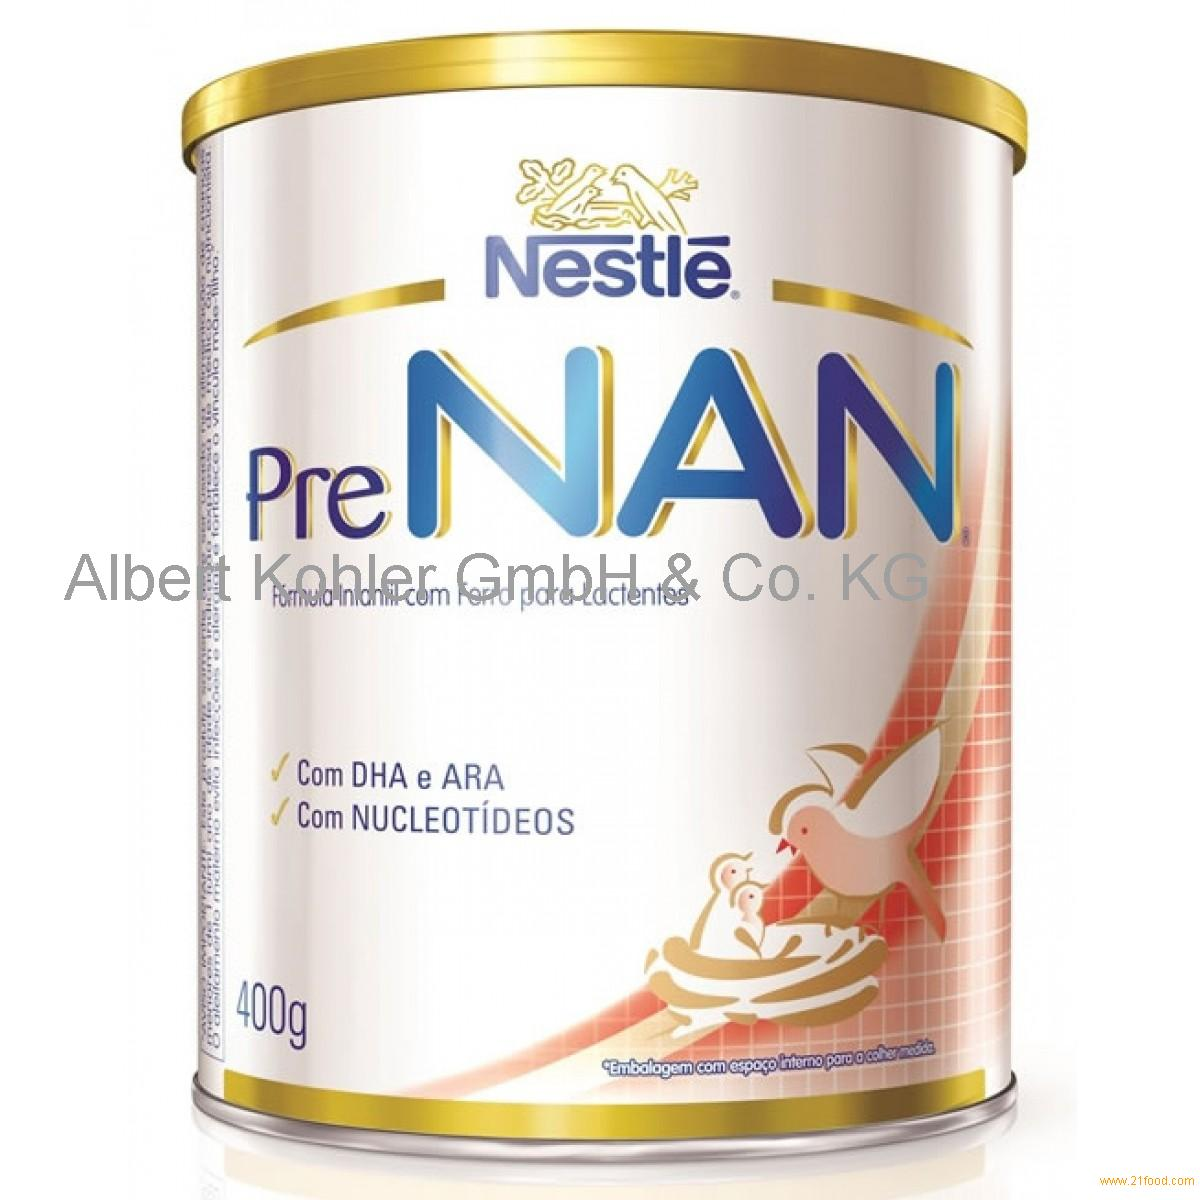 Copy of All Stage Nestle PRE NAN 400g